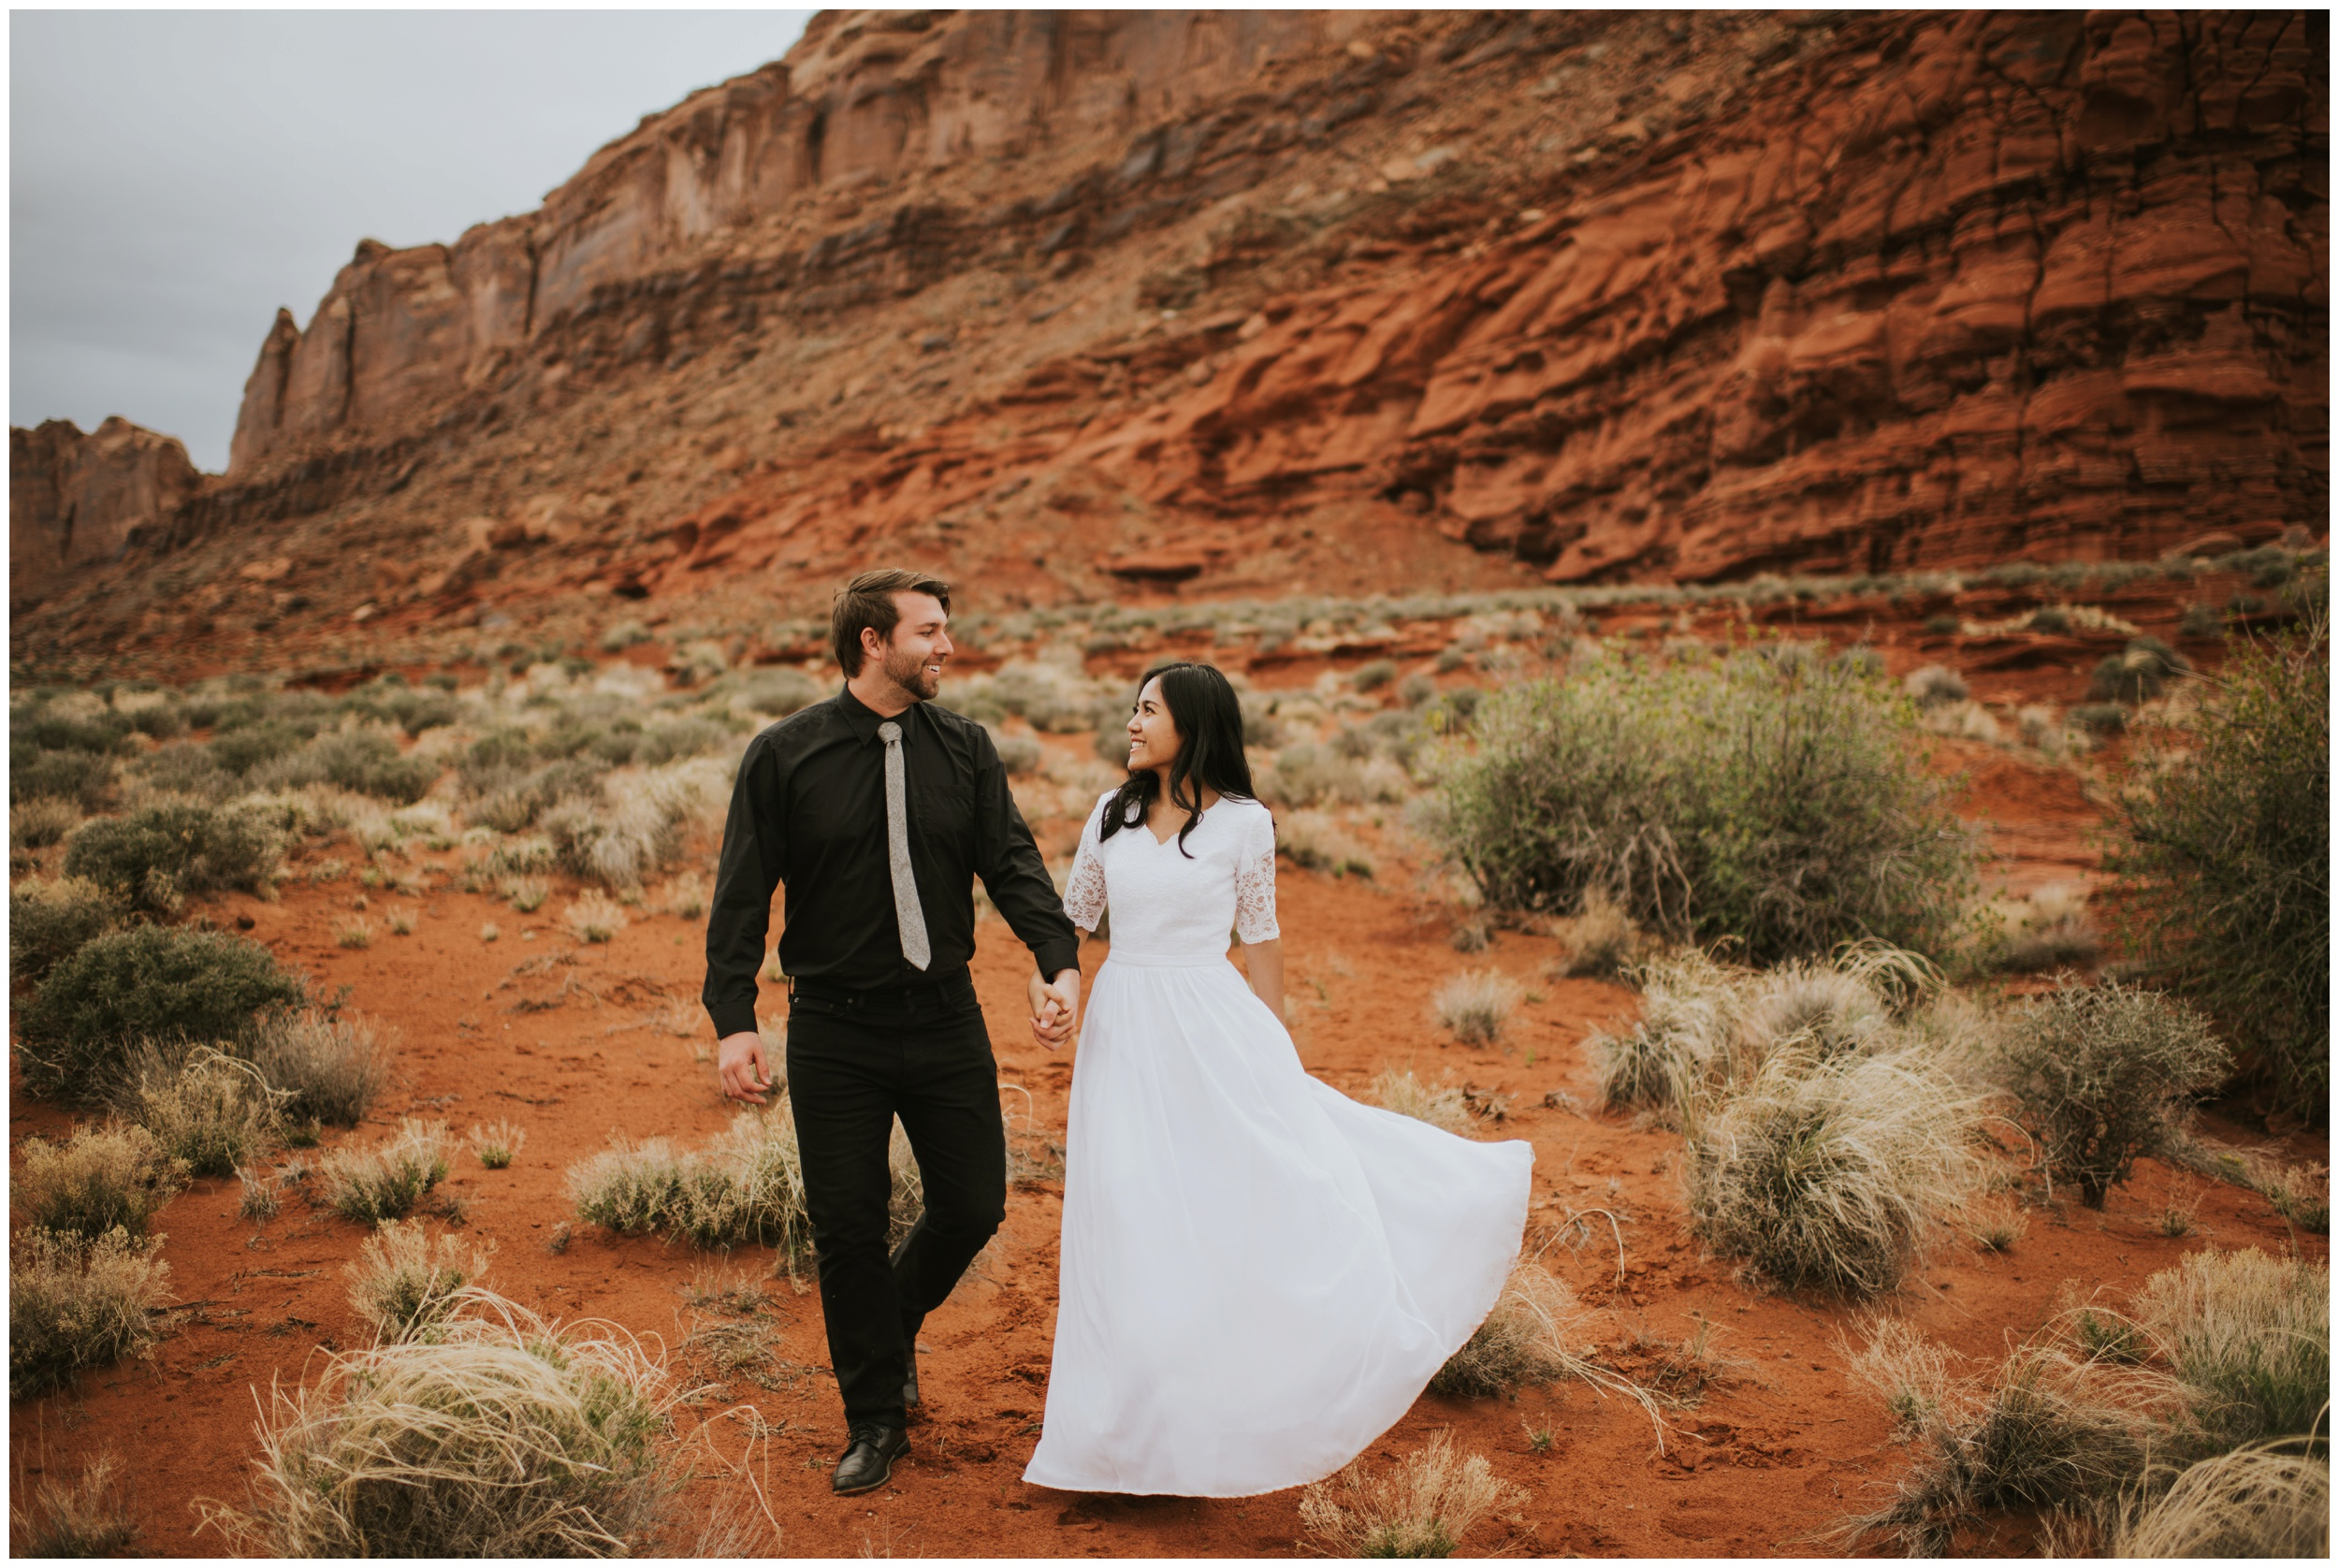 Couple holding hands and looking at each other, destination elopement, candid photography  | Moab Utah, Photographer www.riversandroadsphotography.com